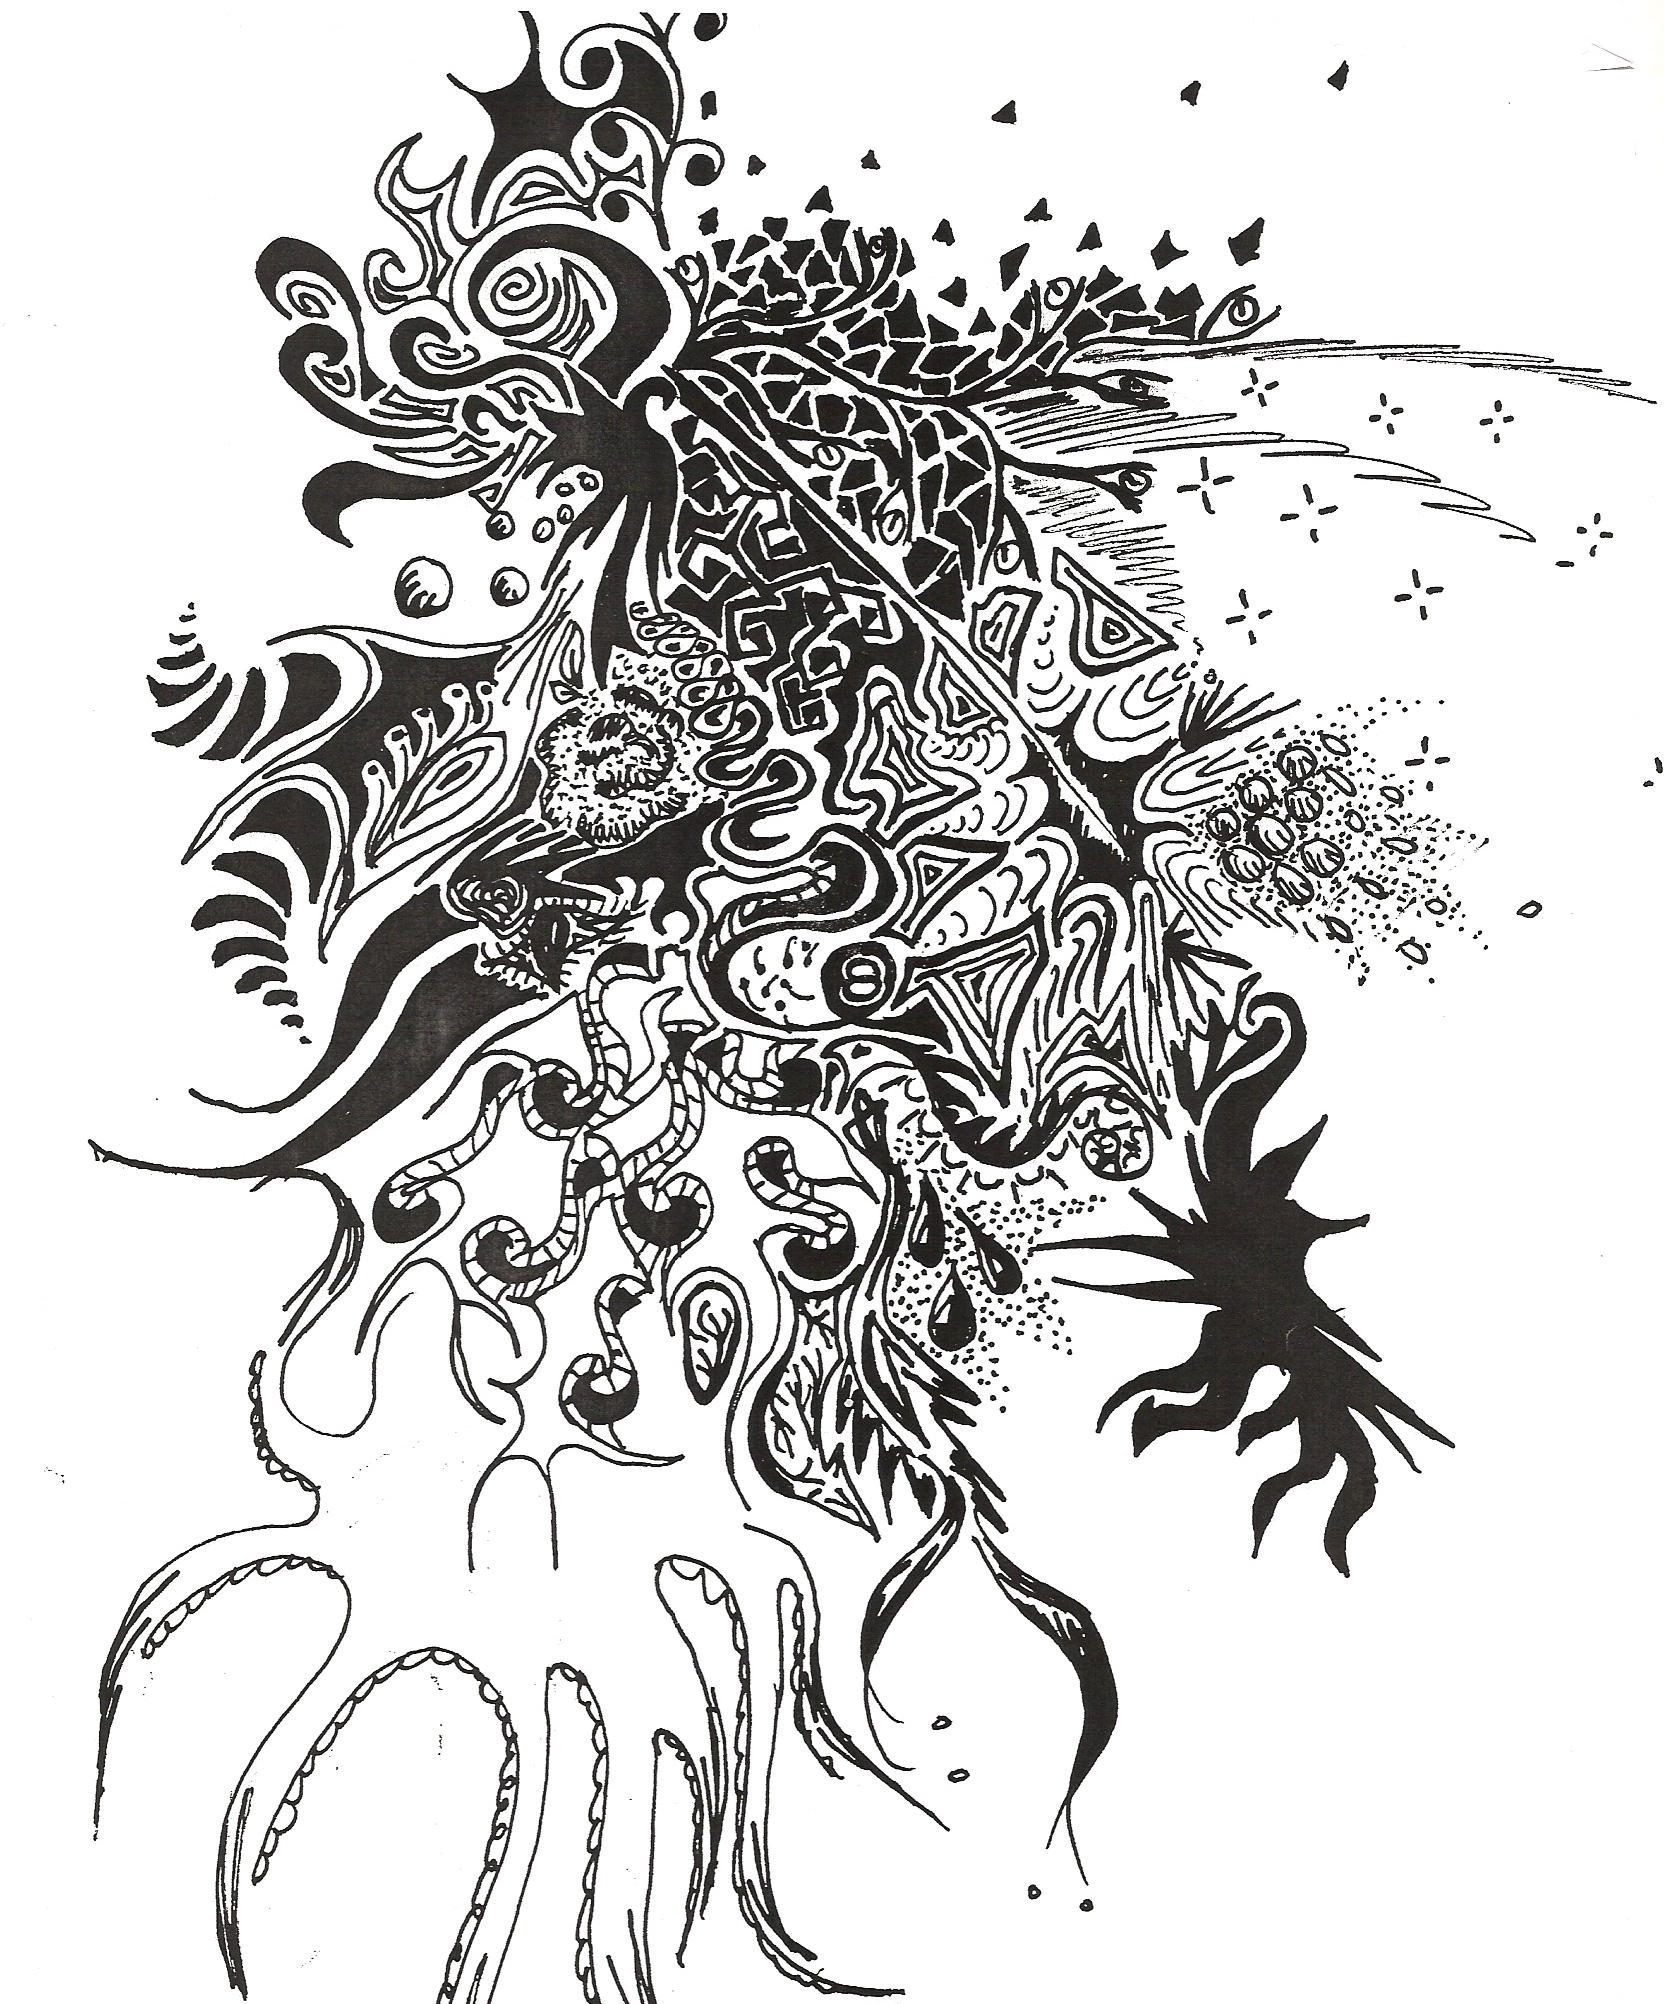 giant octopus diagram volvo v70 wiring 1998 abstract drawing